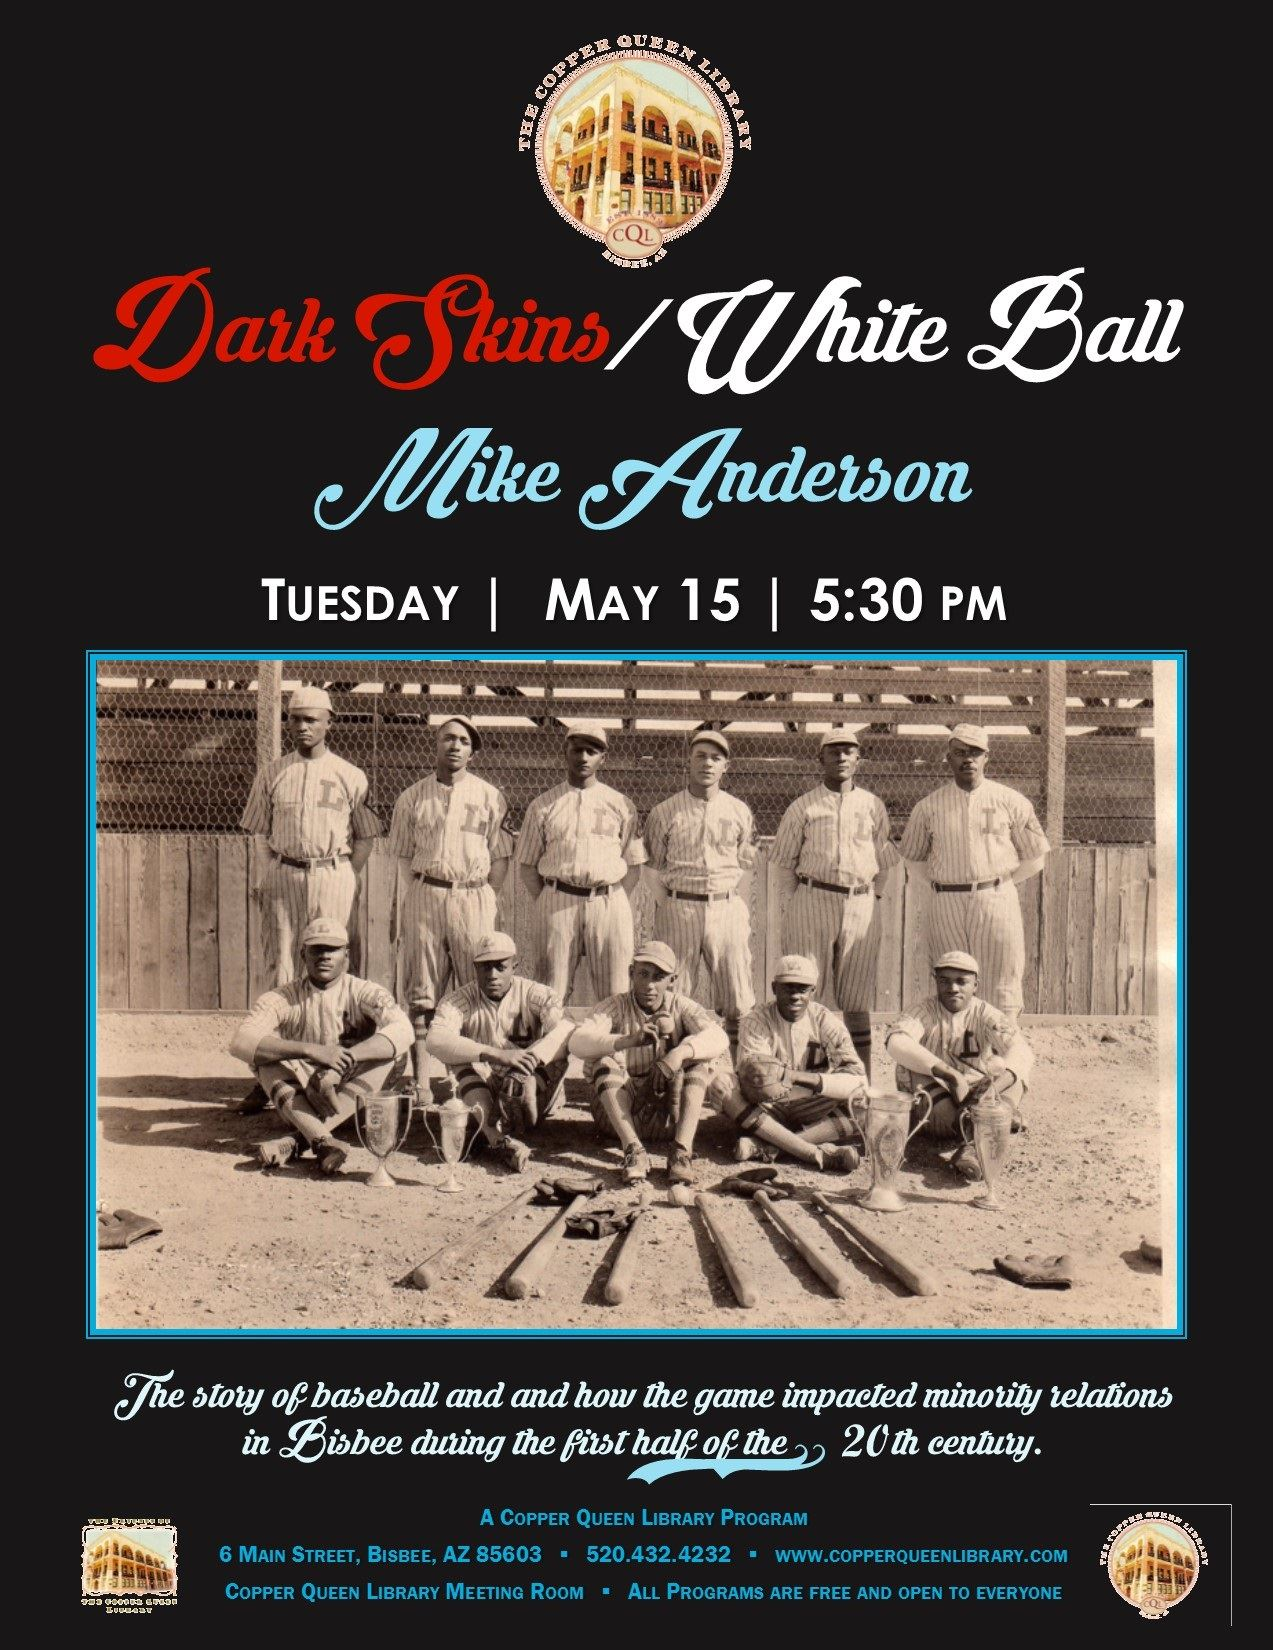 DARK SKINS WHITE BALL ANDERSON 5.15.18 8.5 X 11